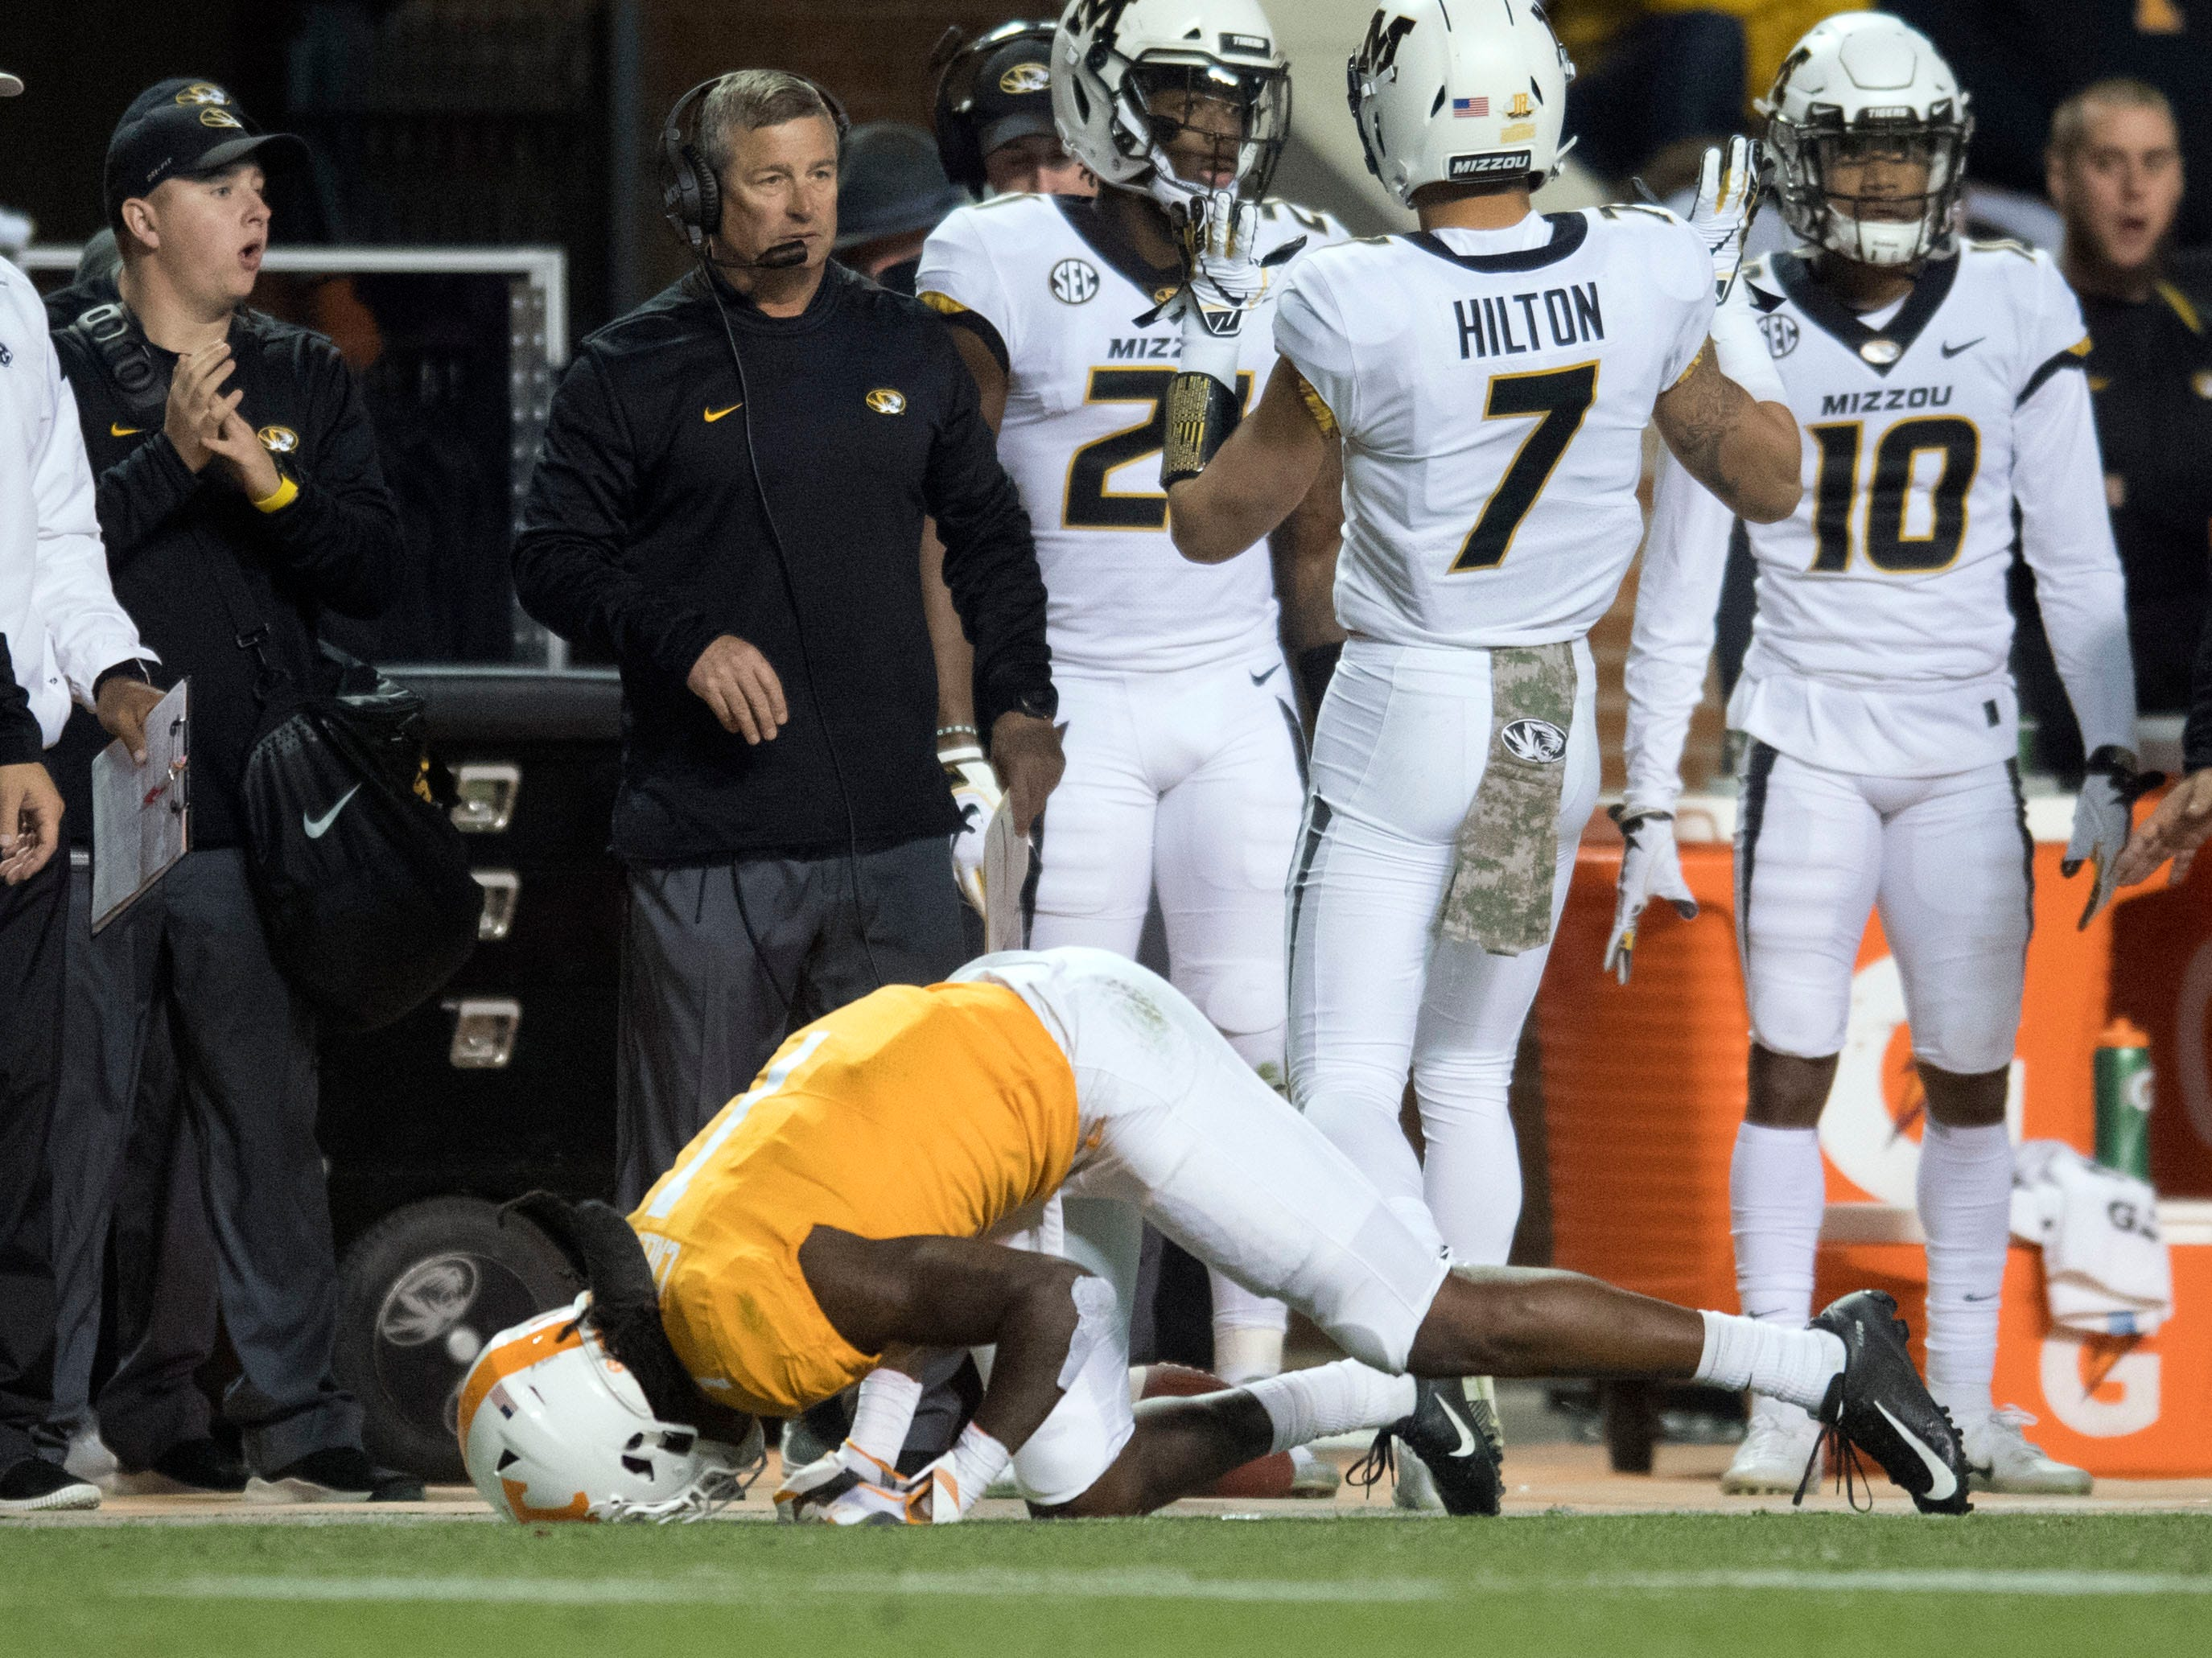 Tennessee wide receiver Marquez Callaway (1) stays down after a play during the game against Missouri on Saturday, November 17, 2018.